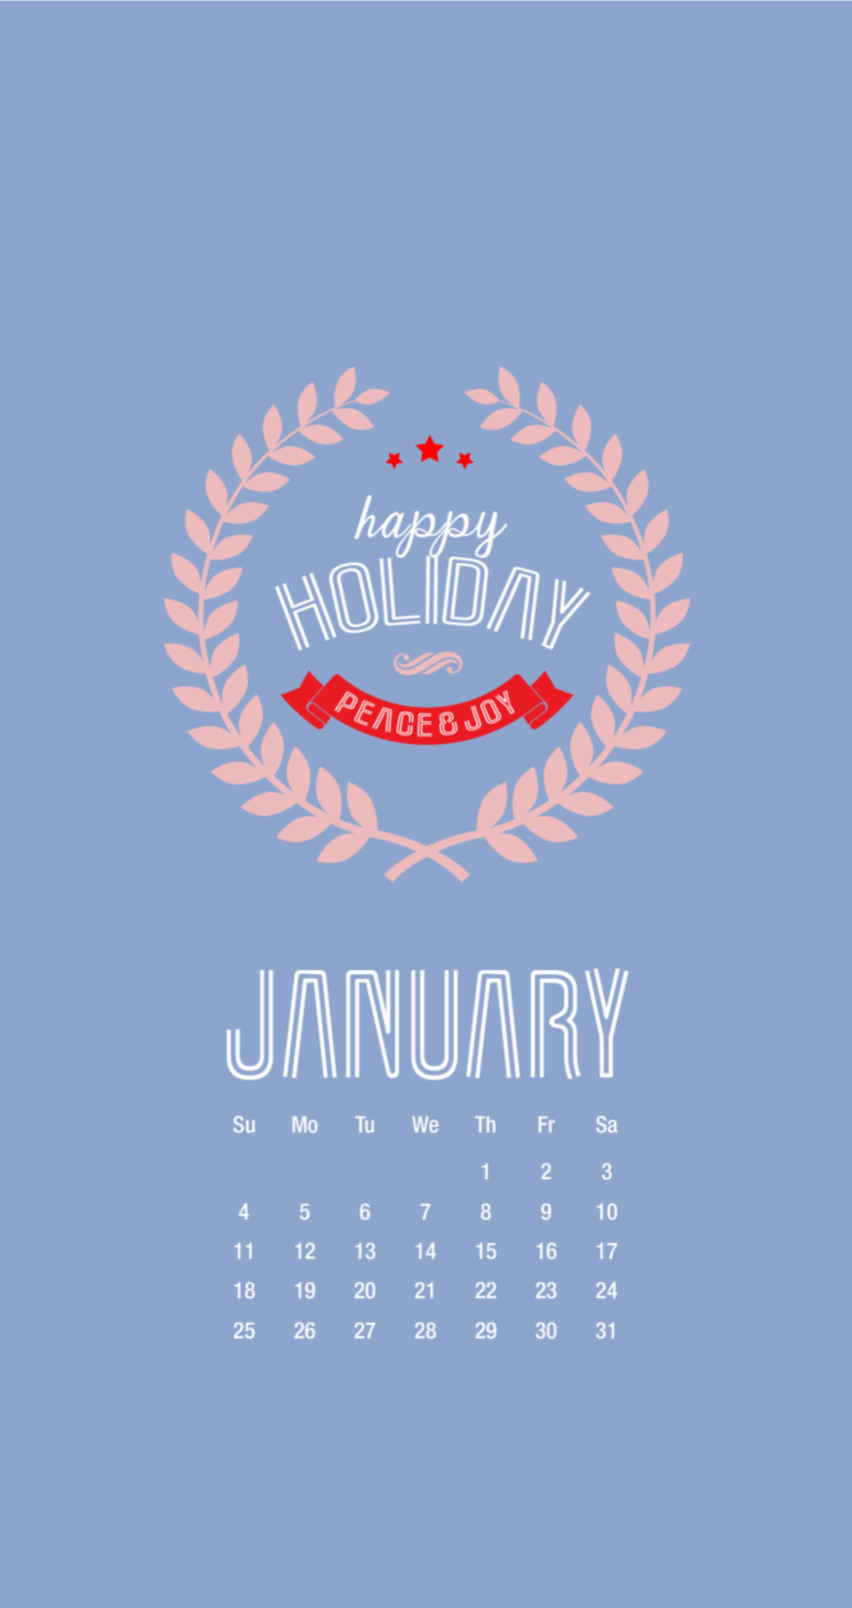 Tap Image For More New Year 2015 IPhone 6 Calendar Wallpapers January